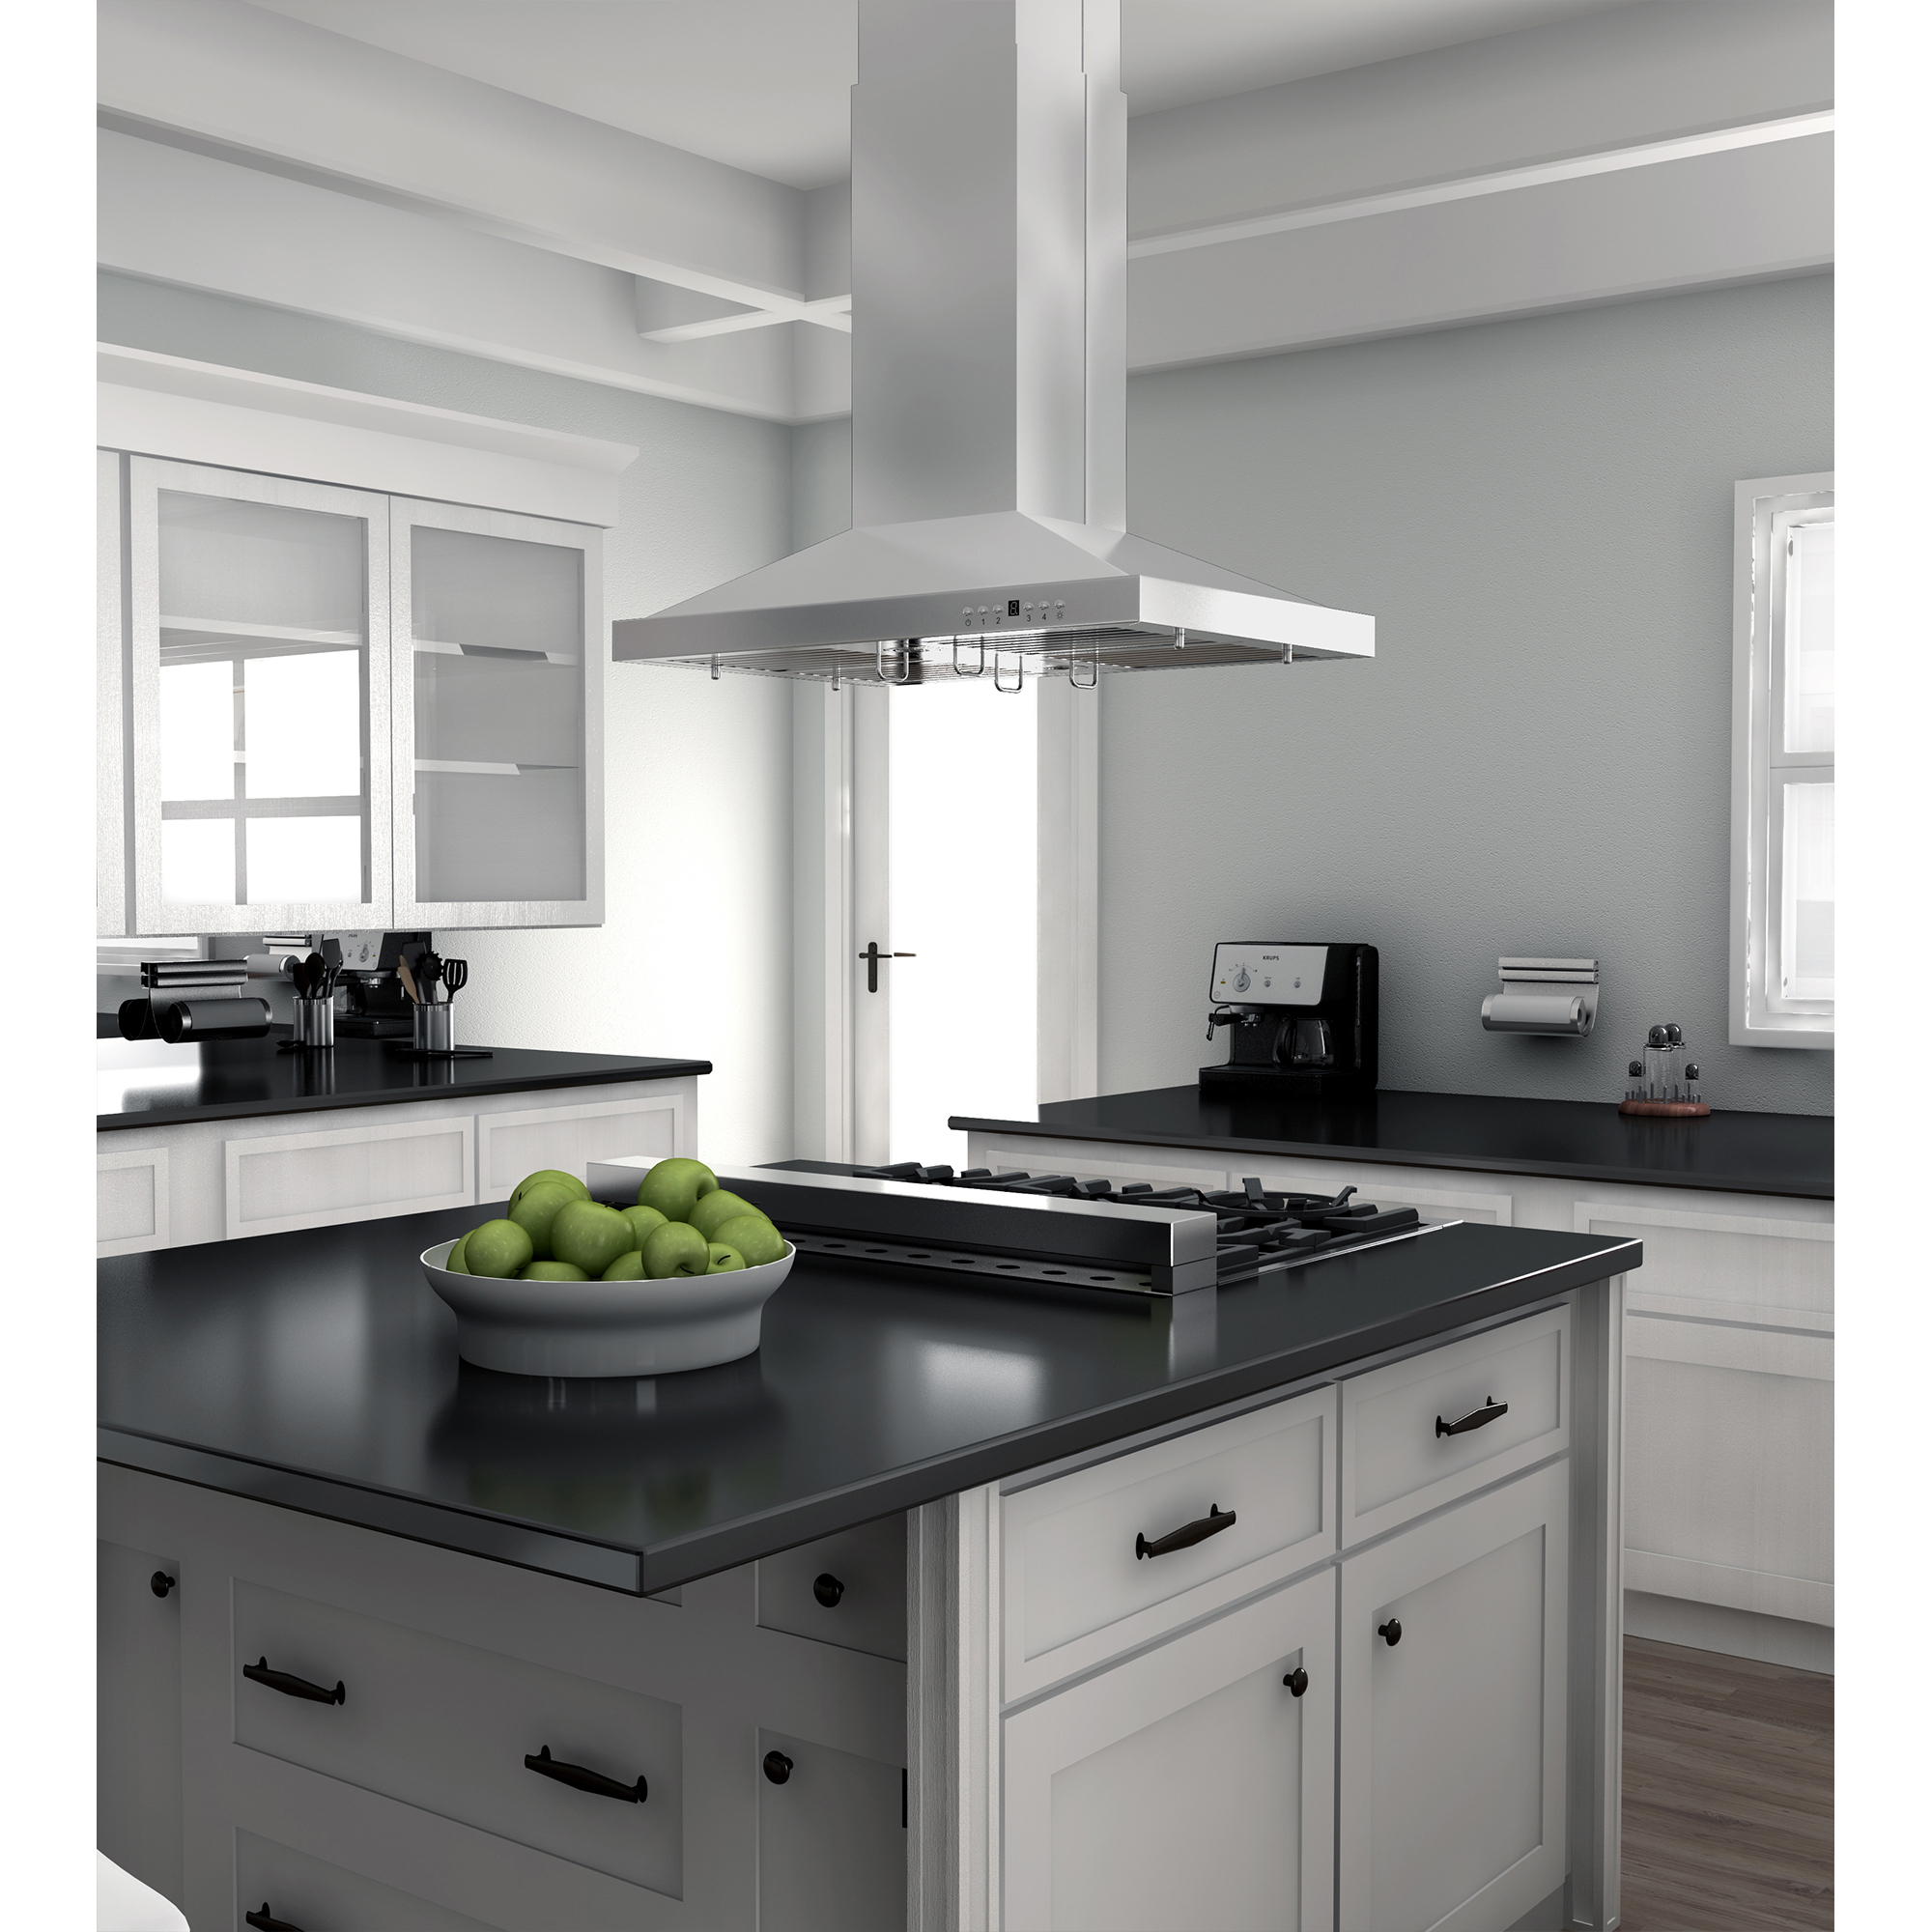 zline-stainless-steel-island-range-hood-GL2i-kitchen-new-3-seam.jpg